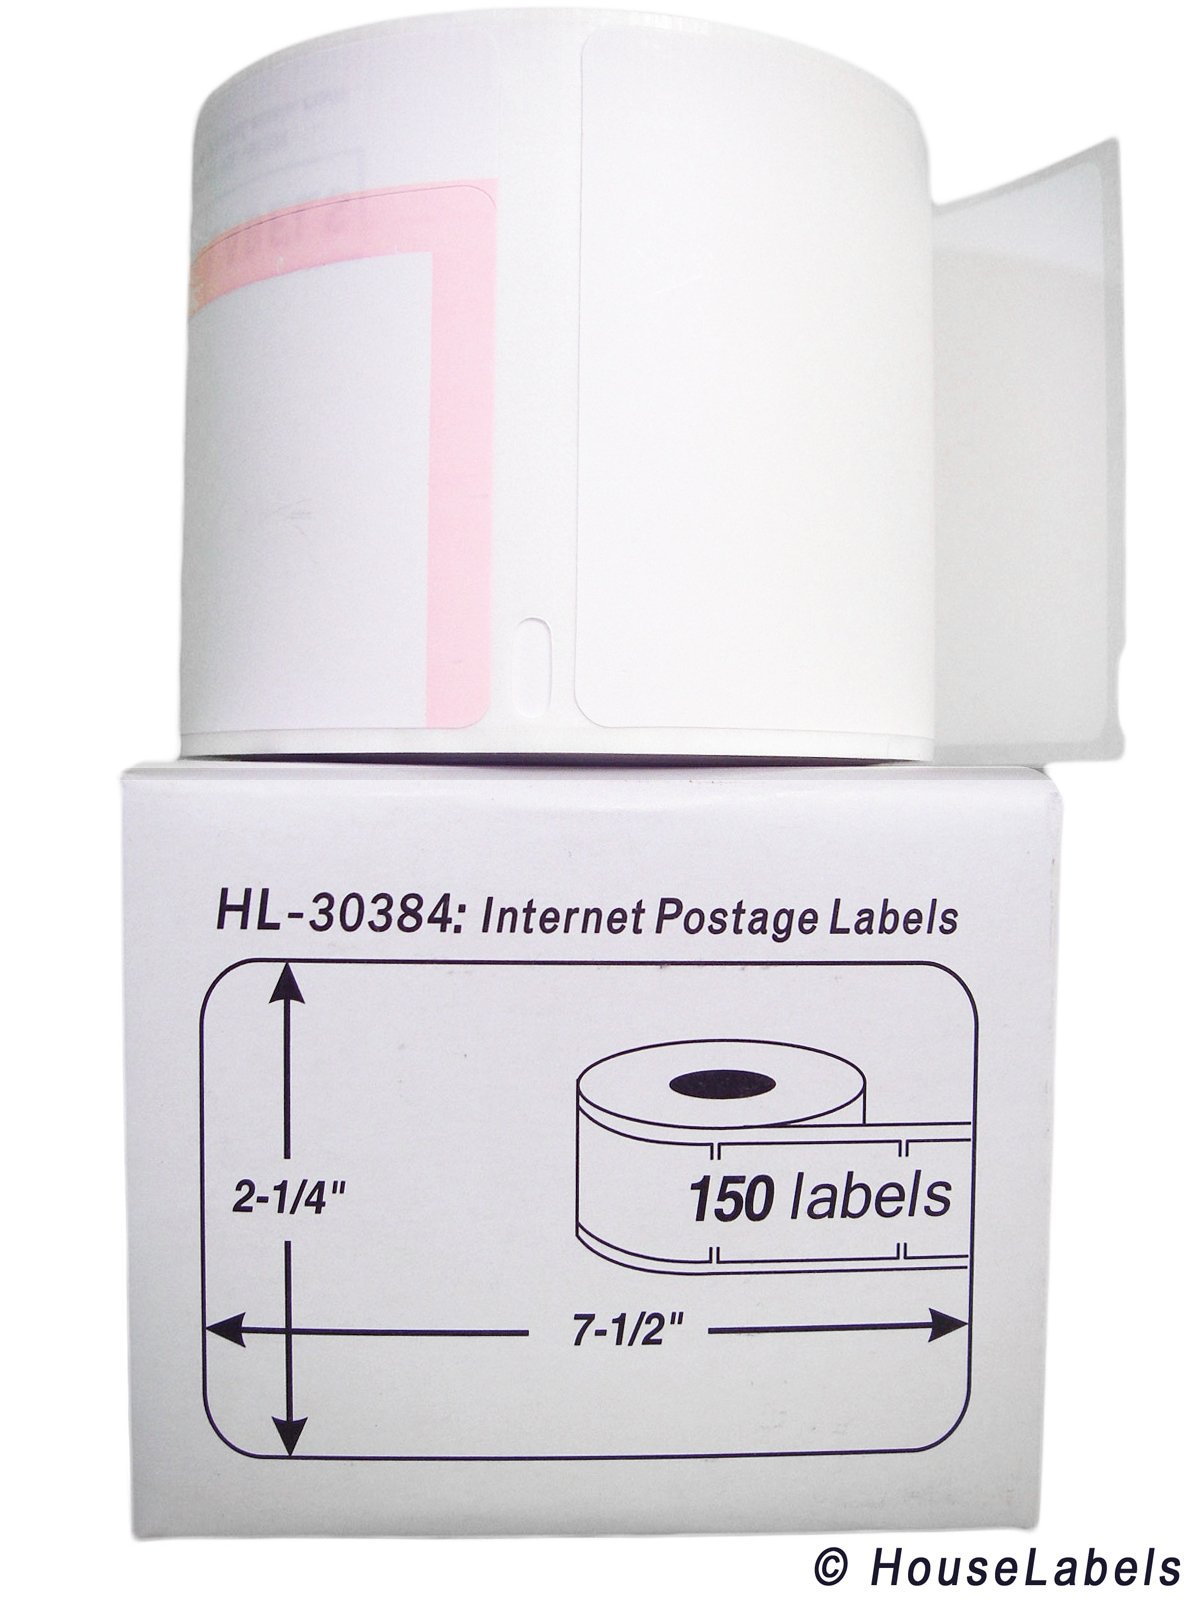 12 Rolls; 150 Labels per Roll of DYMO-Compatible 30384 2-Part Internet Postage Labels (2-1/4'' x 7-1/2'') - BPA Free! by HouseLabels